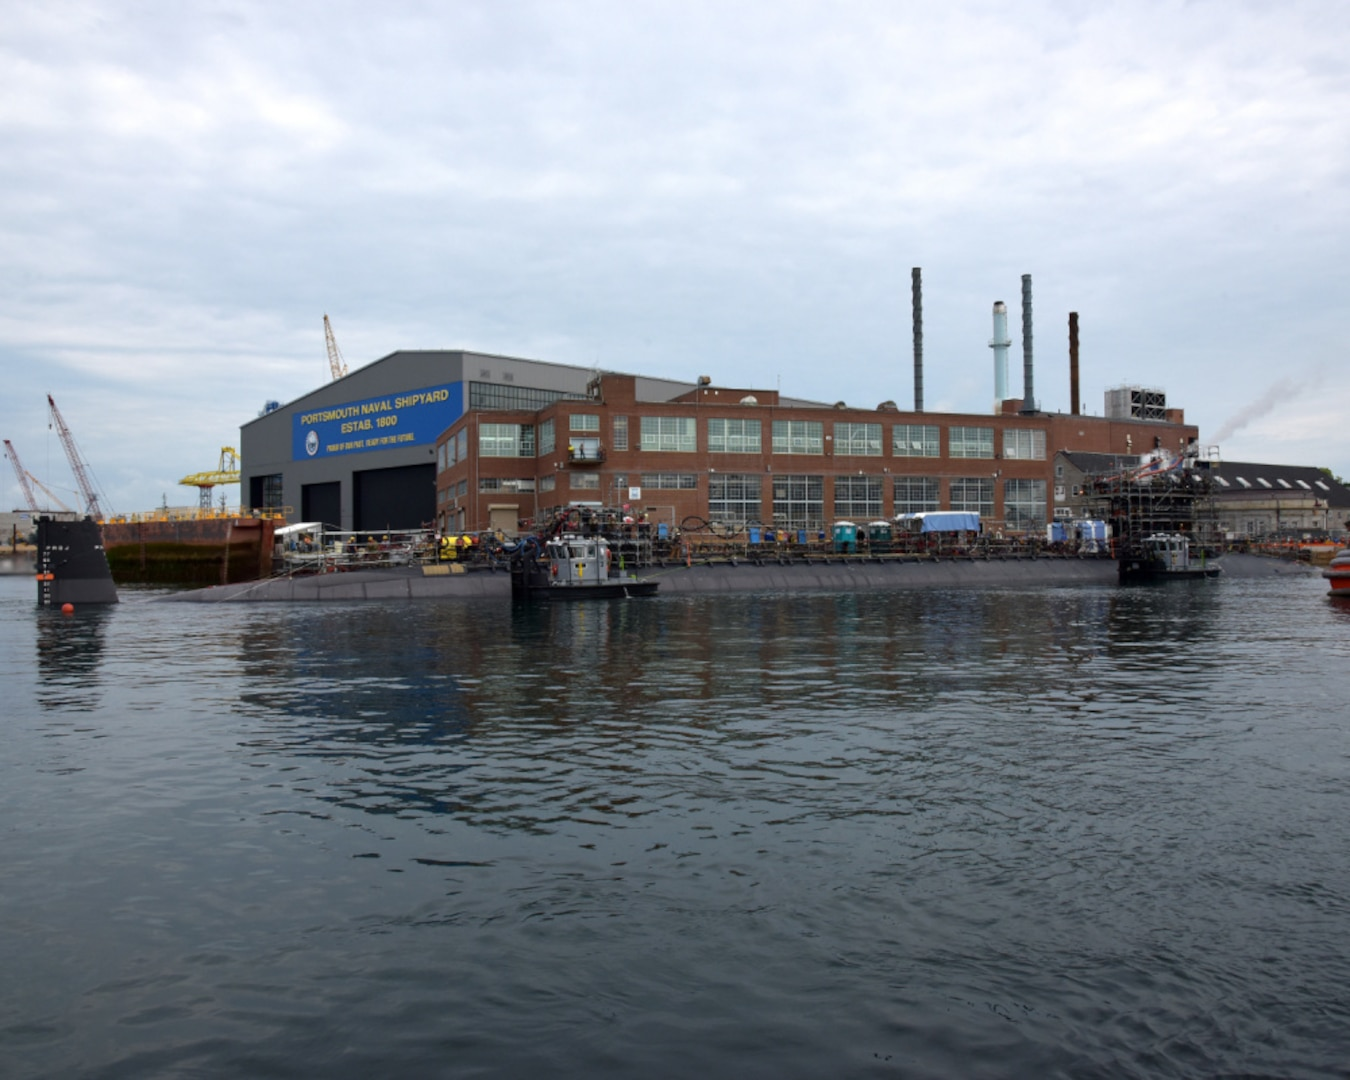 Portsmouth Naval Shipyard, Kittery, ME: Jun 22, 2021: USS Virginia (SSN 774) successfully exits dry dock at the shipyard. Virginia is at the shipyard for a scheduled maintenance period.